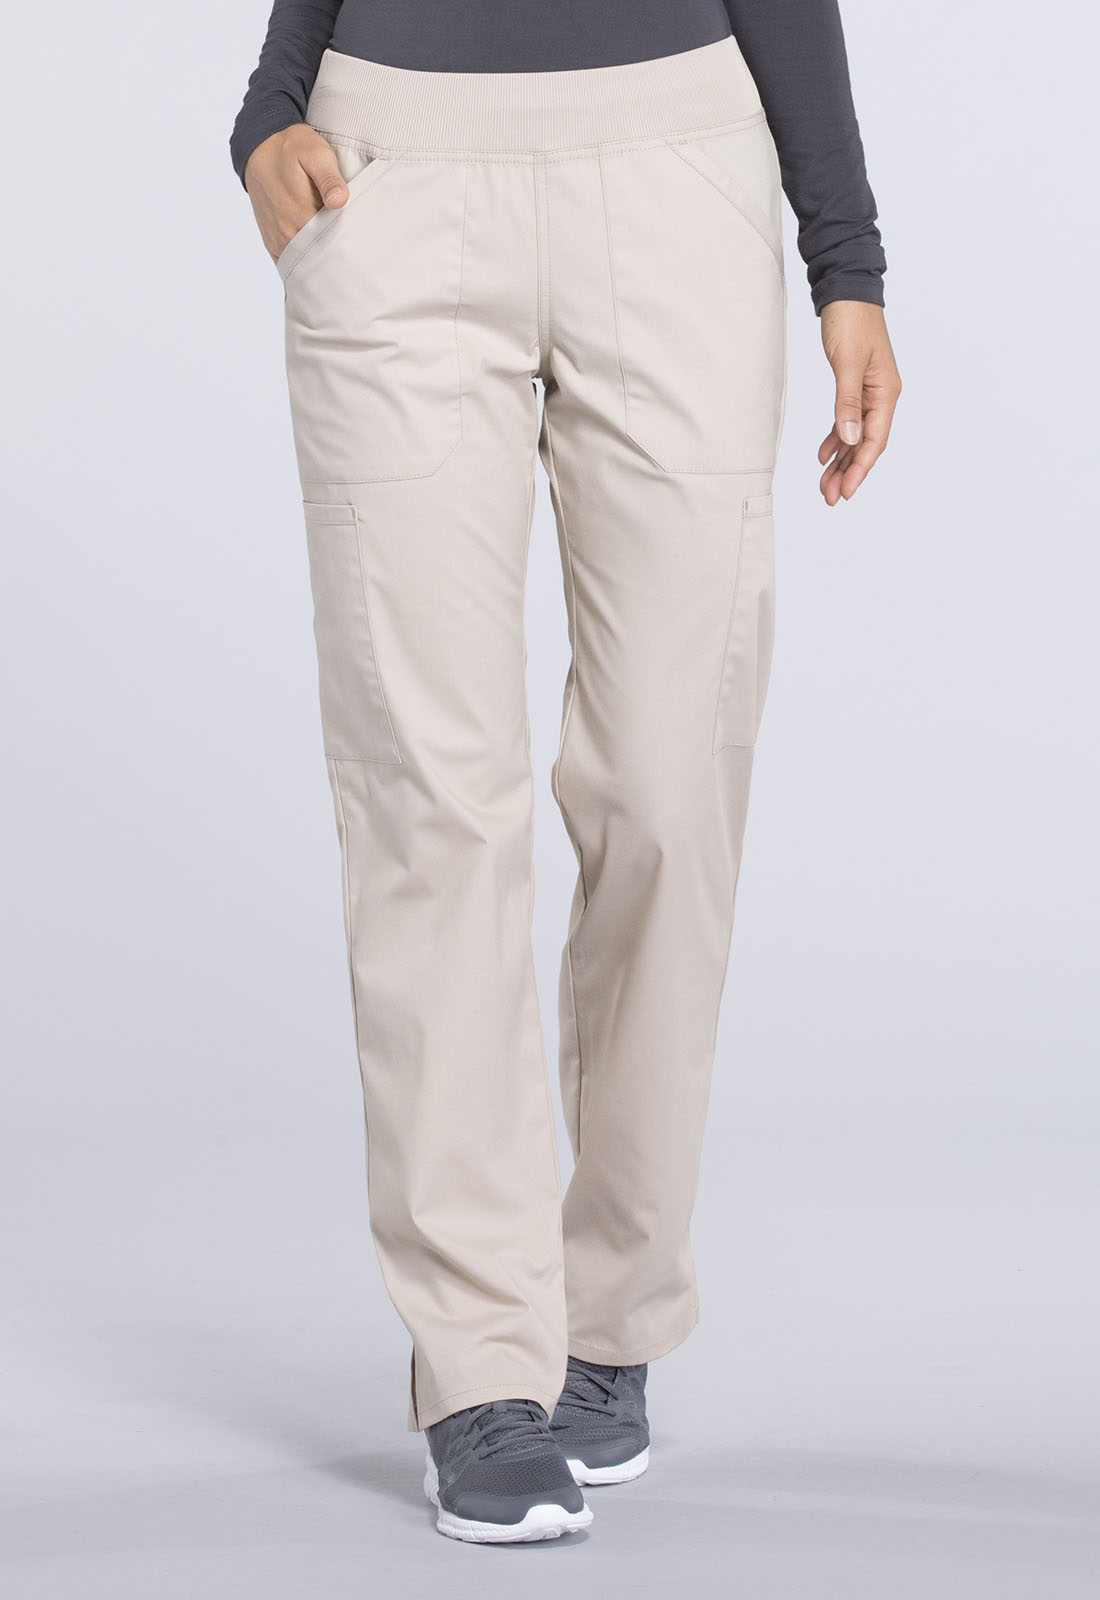 83caf9634bb Cherokee Workwear. WW Professionals Mid Rise Straight Leg Pull-on Cargo Pant  in Khaki (Petite)